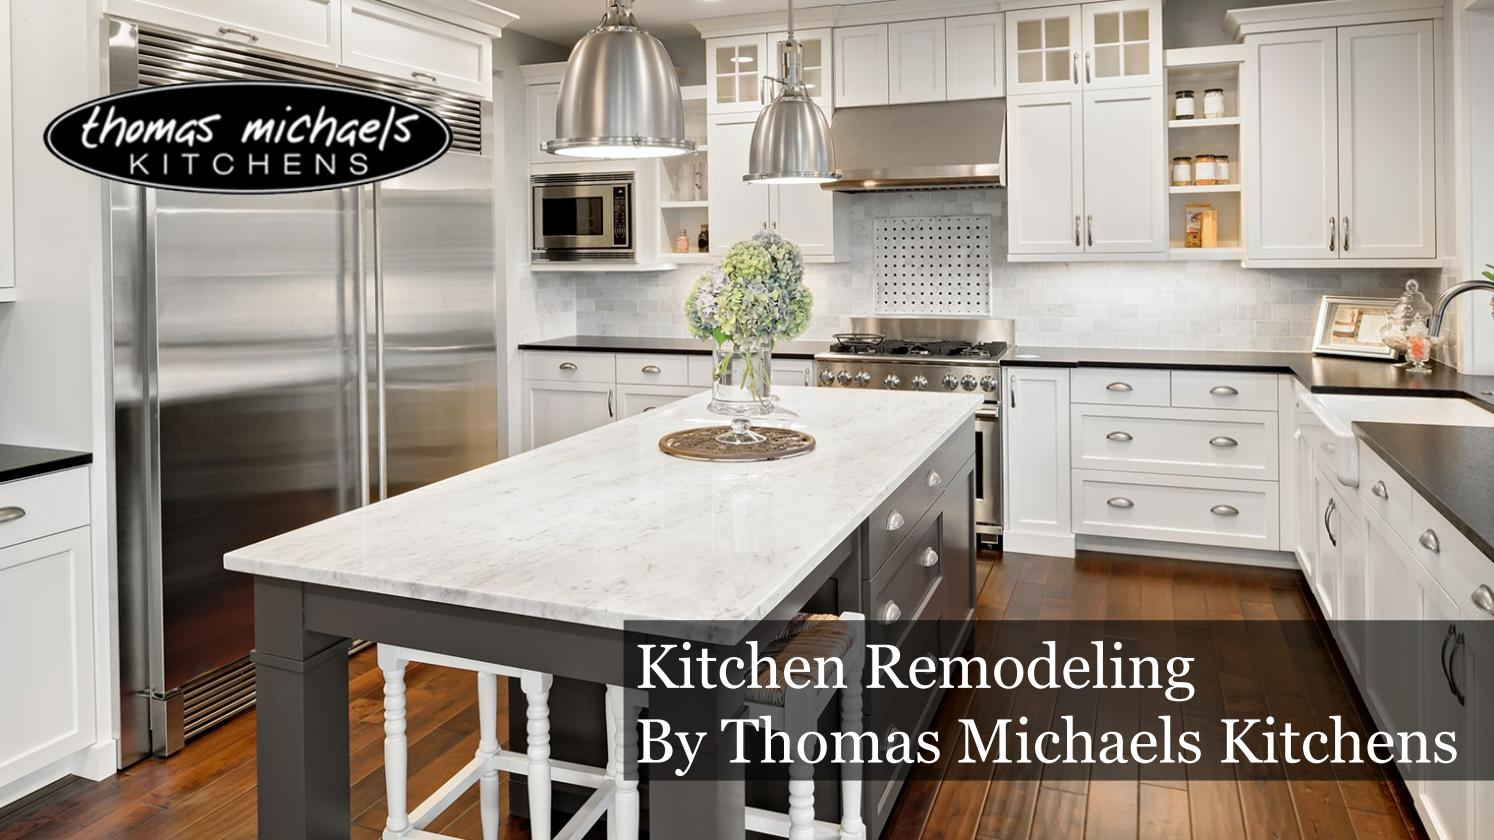 Cape Cod House Kitchen Remodel by Thomas Michael Kitchens - issuu